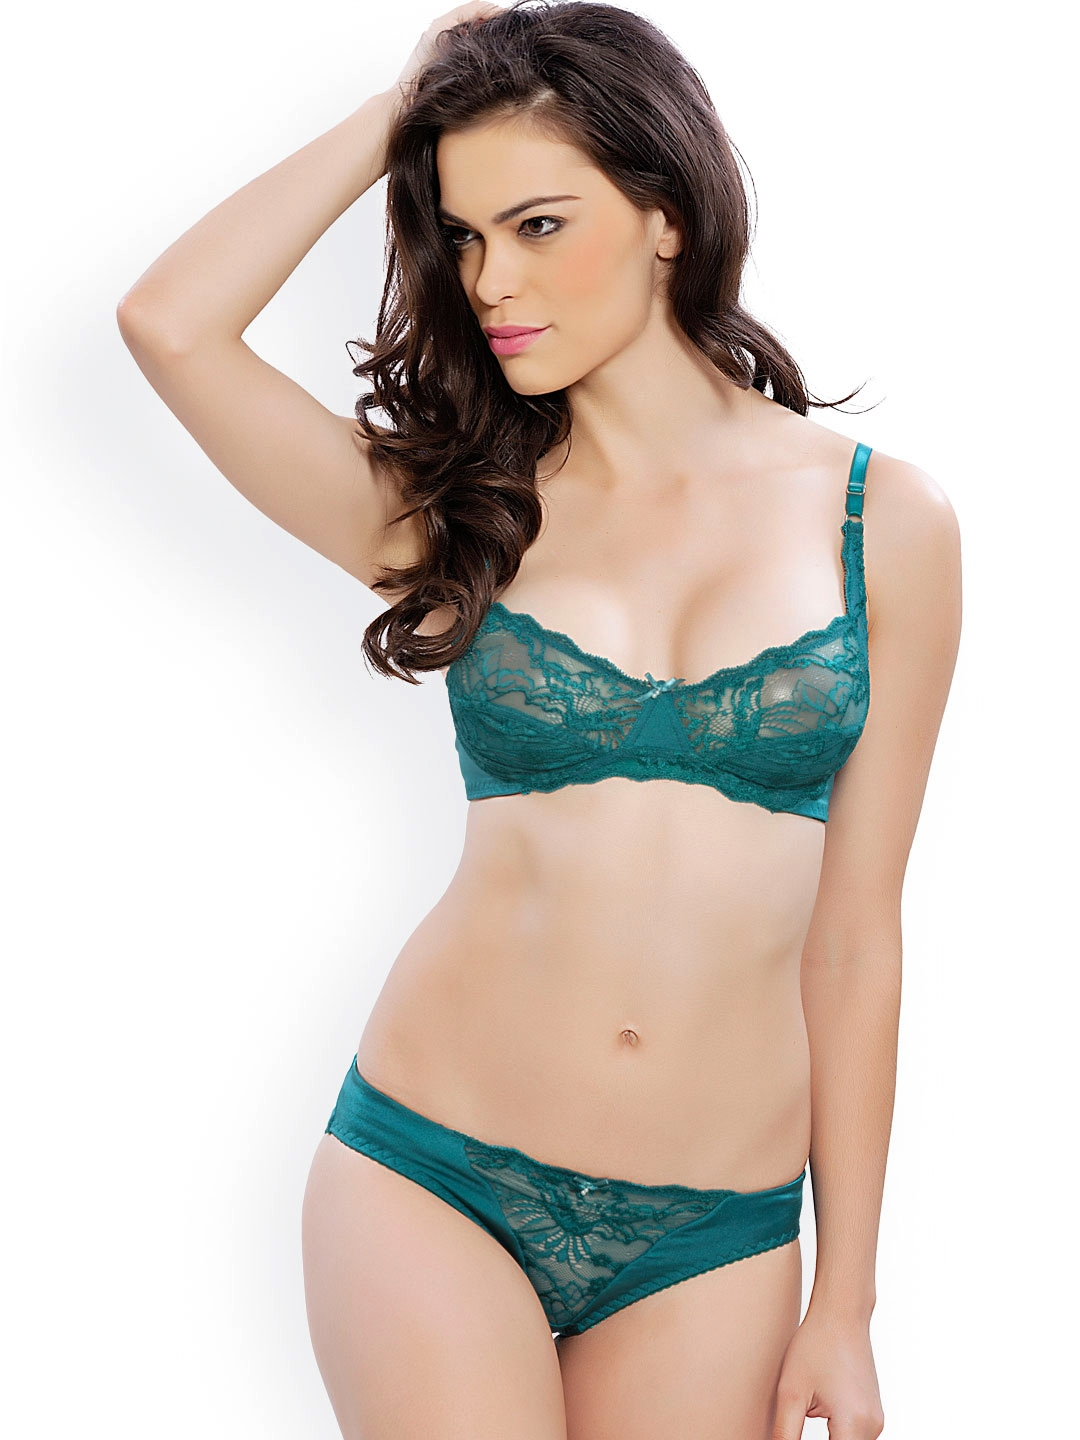 69aeac7394 Buy Lady Love Green Lace Lingerie Set LLSET4028 - Lingerie Set for ...